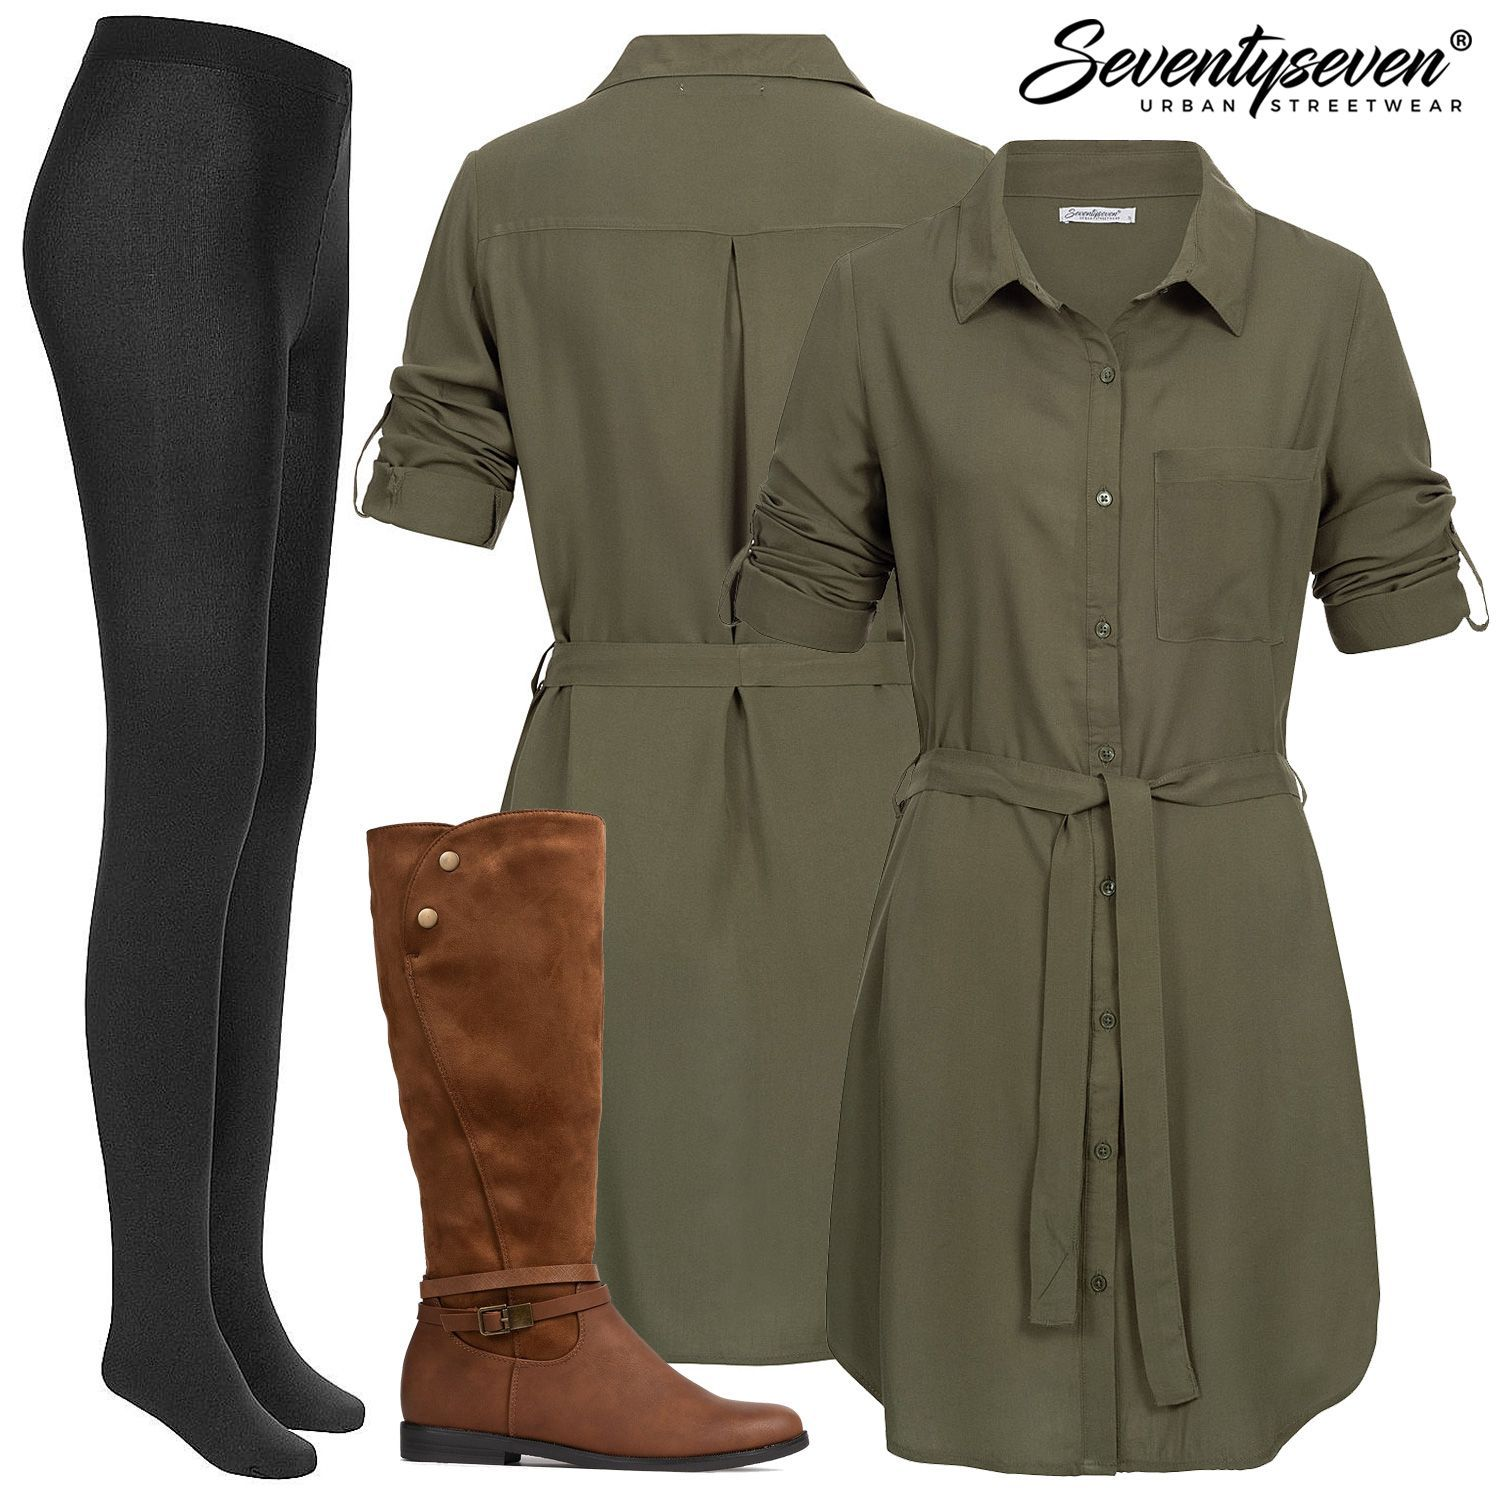 Herbst-Outfit nur 67,97 €!